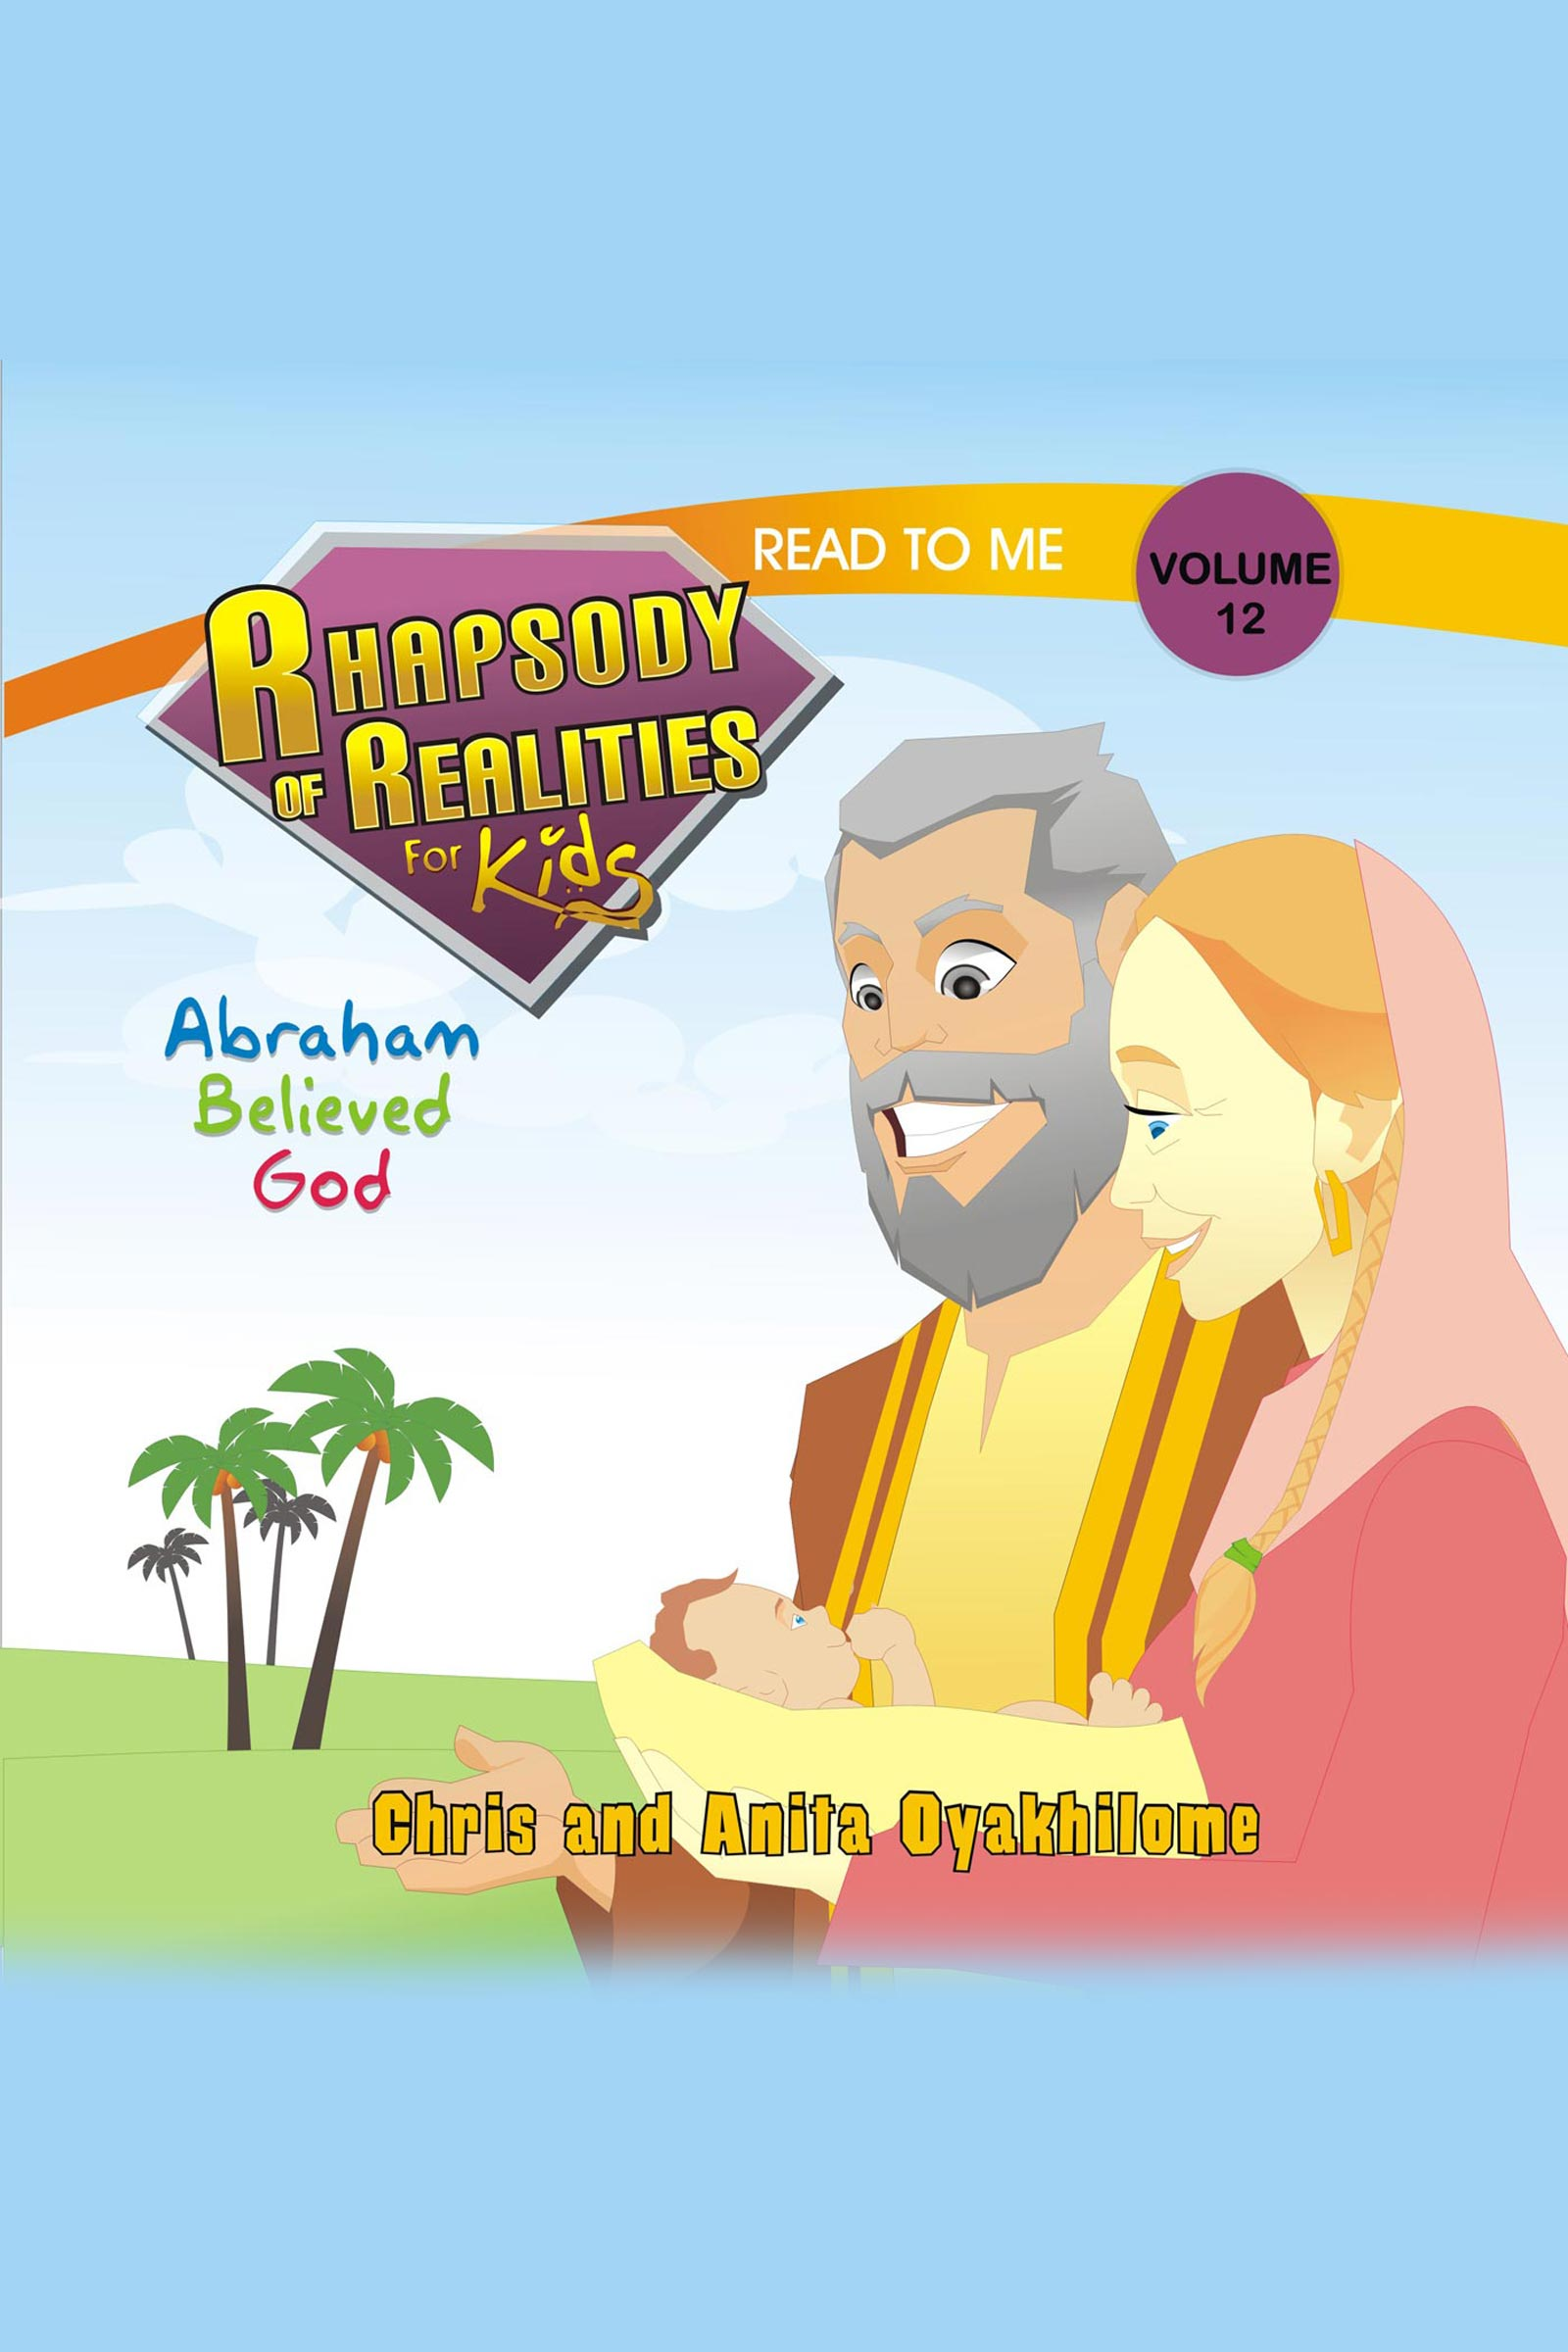 Pastor Chris and Anita Oyakhilome - Rhapsody of Realities for Kids March/April 2013 Edition